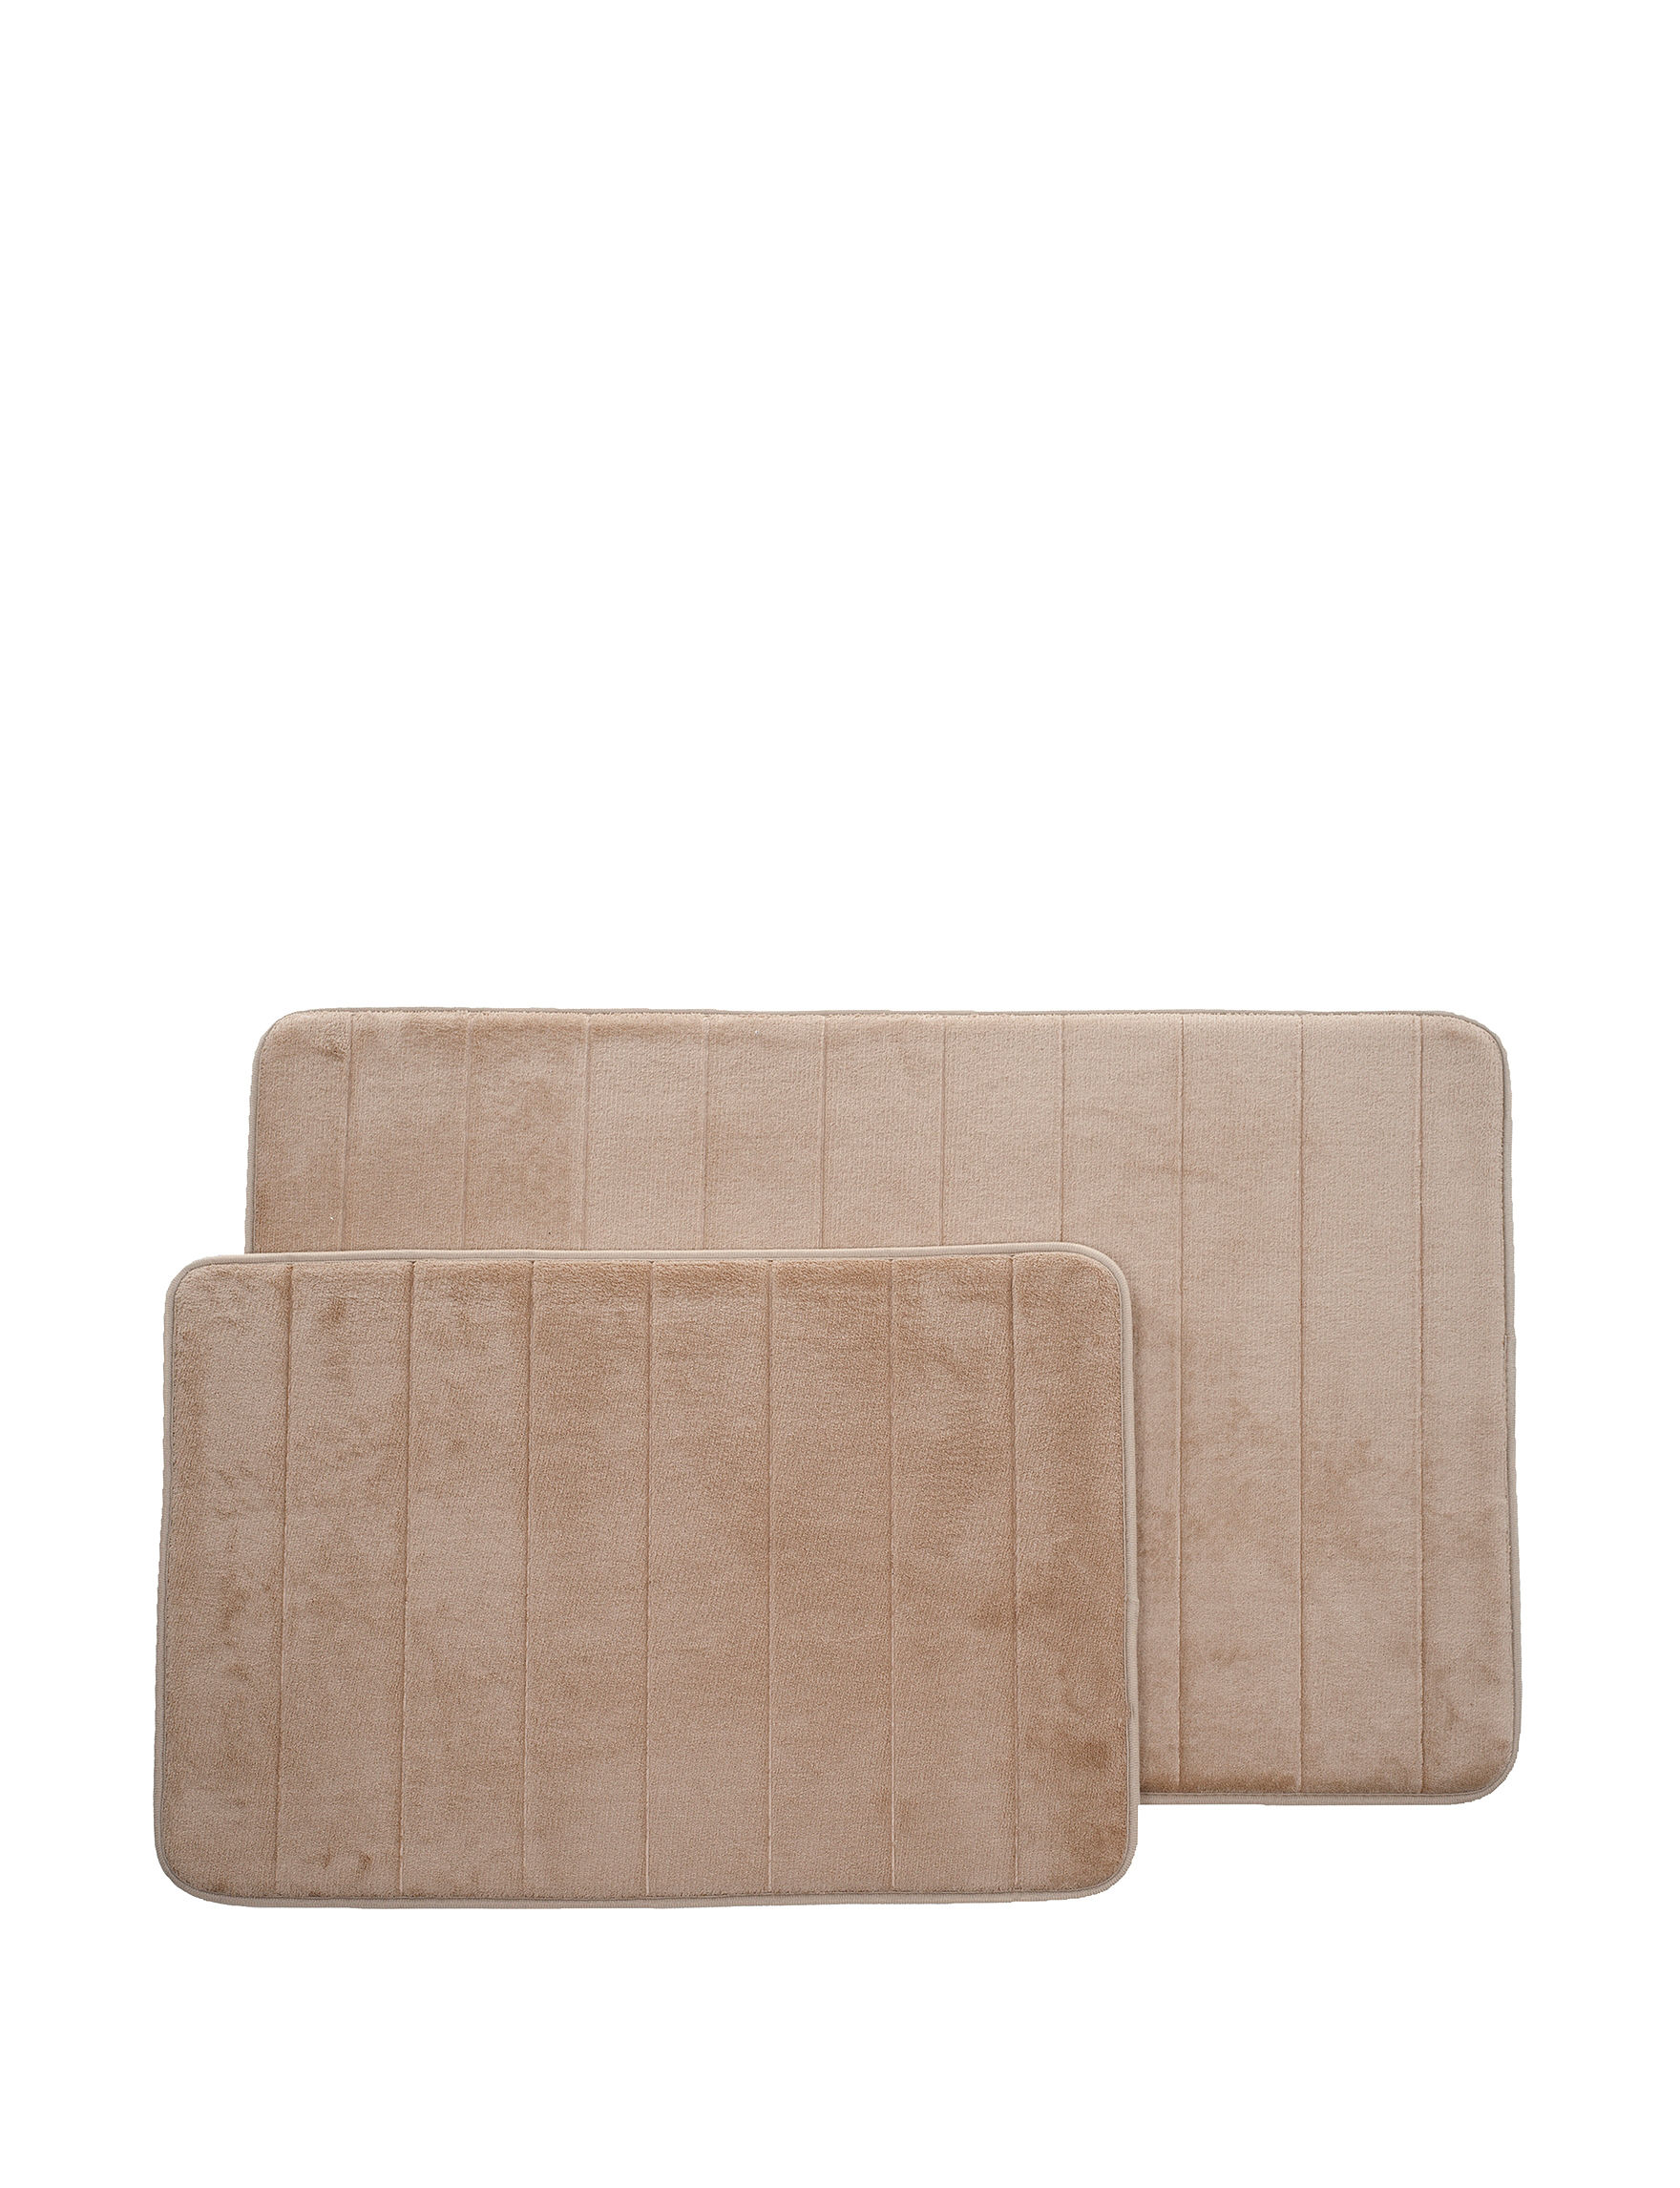 Lavish Home Taupe Bath Rugs & Mats